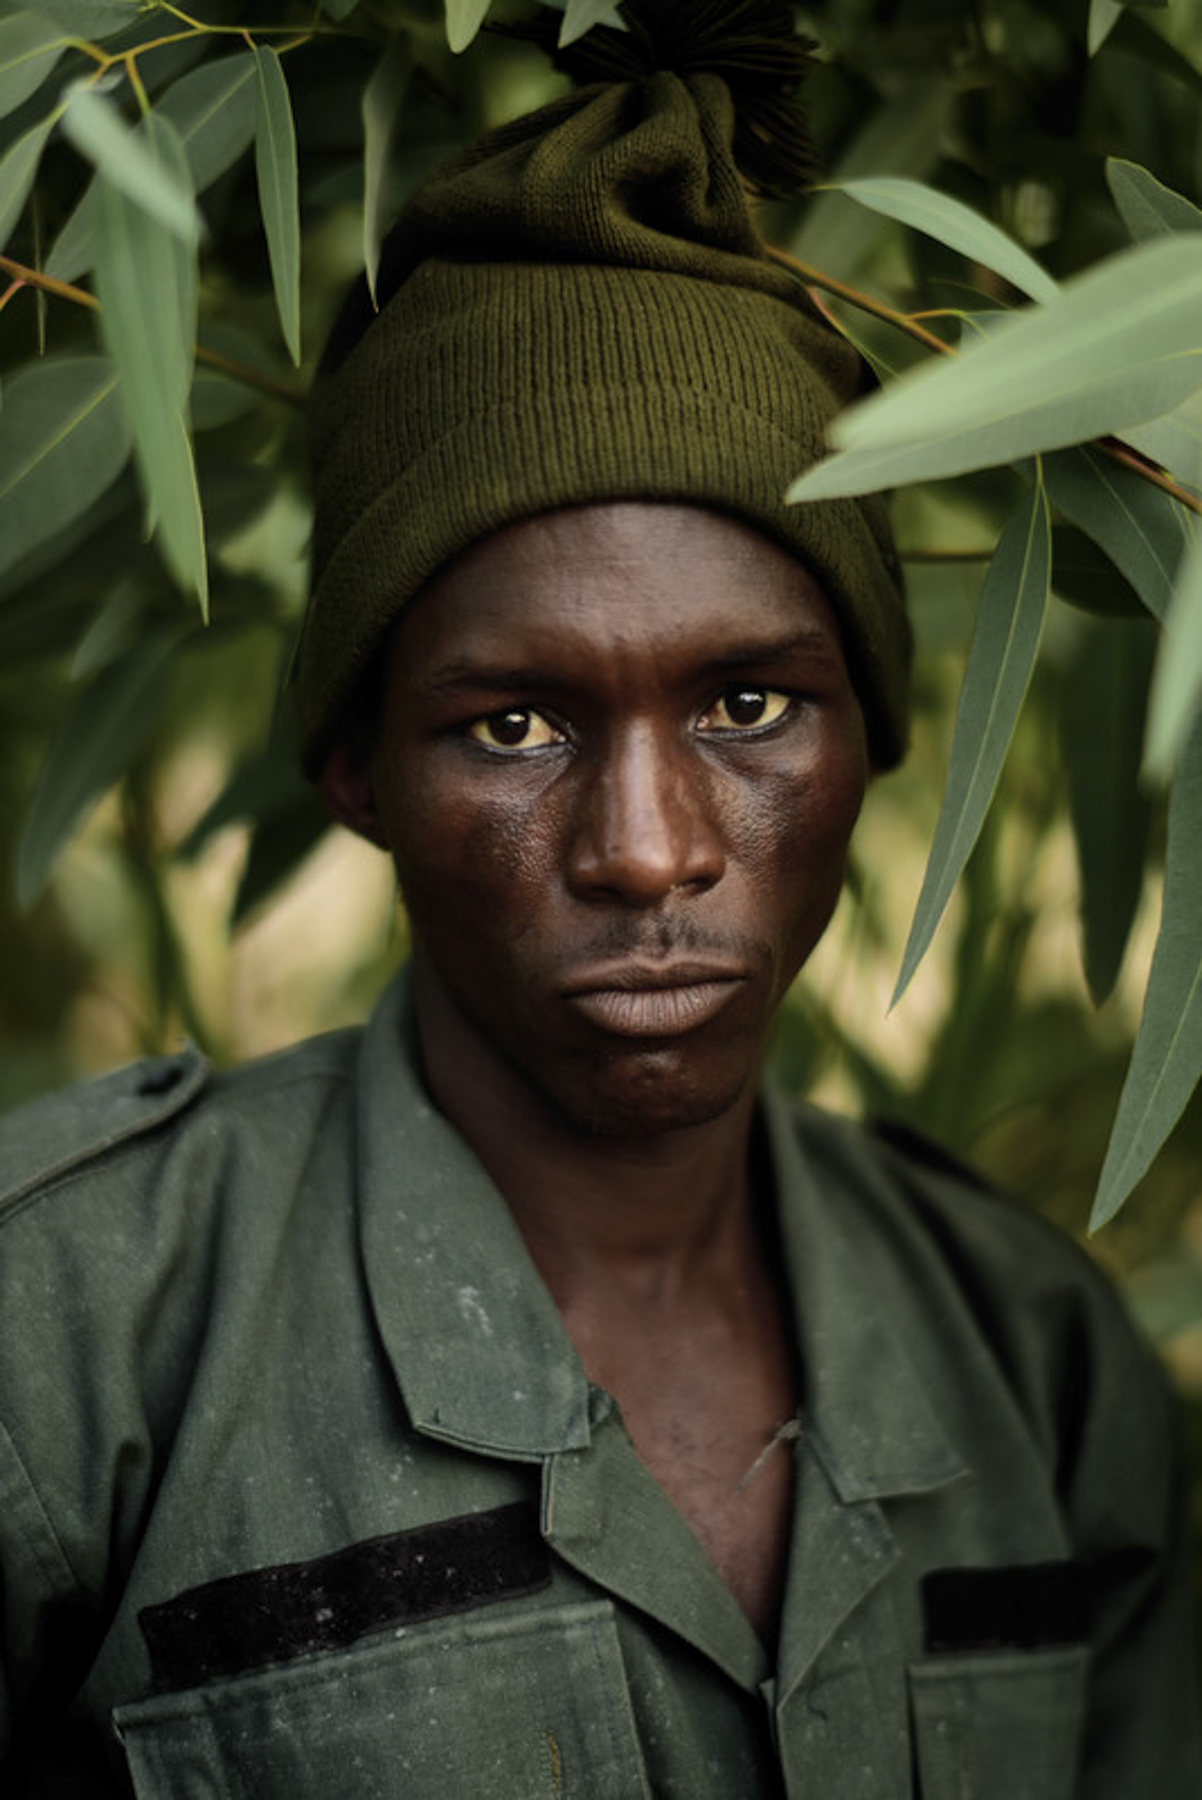 Nigeria, Borno State, Maiduguri, May 2017